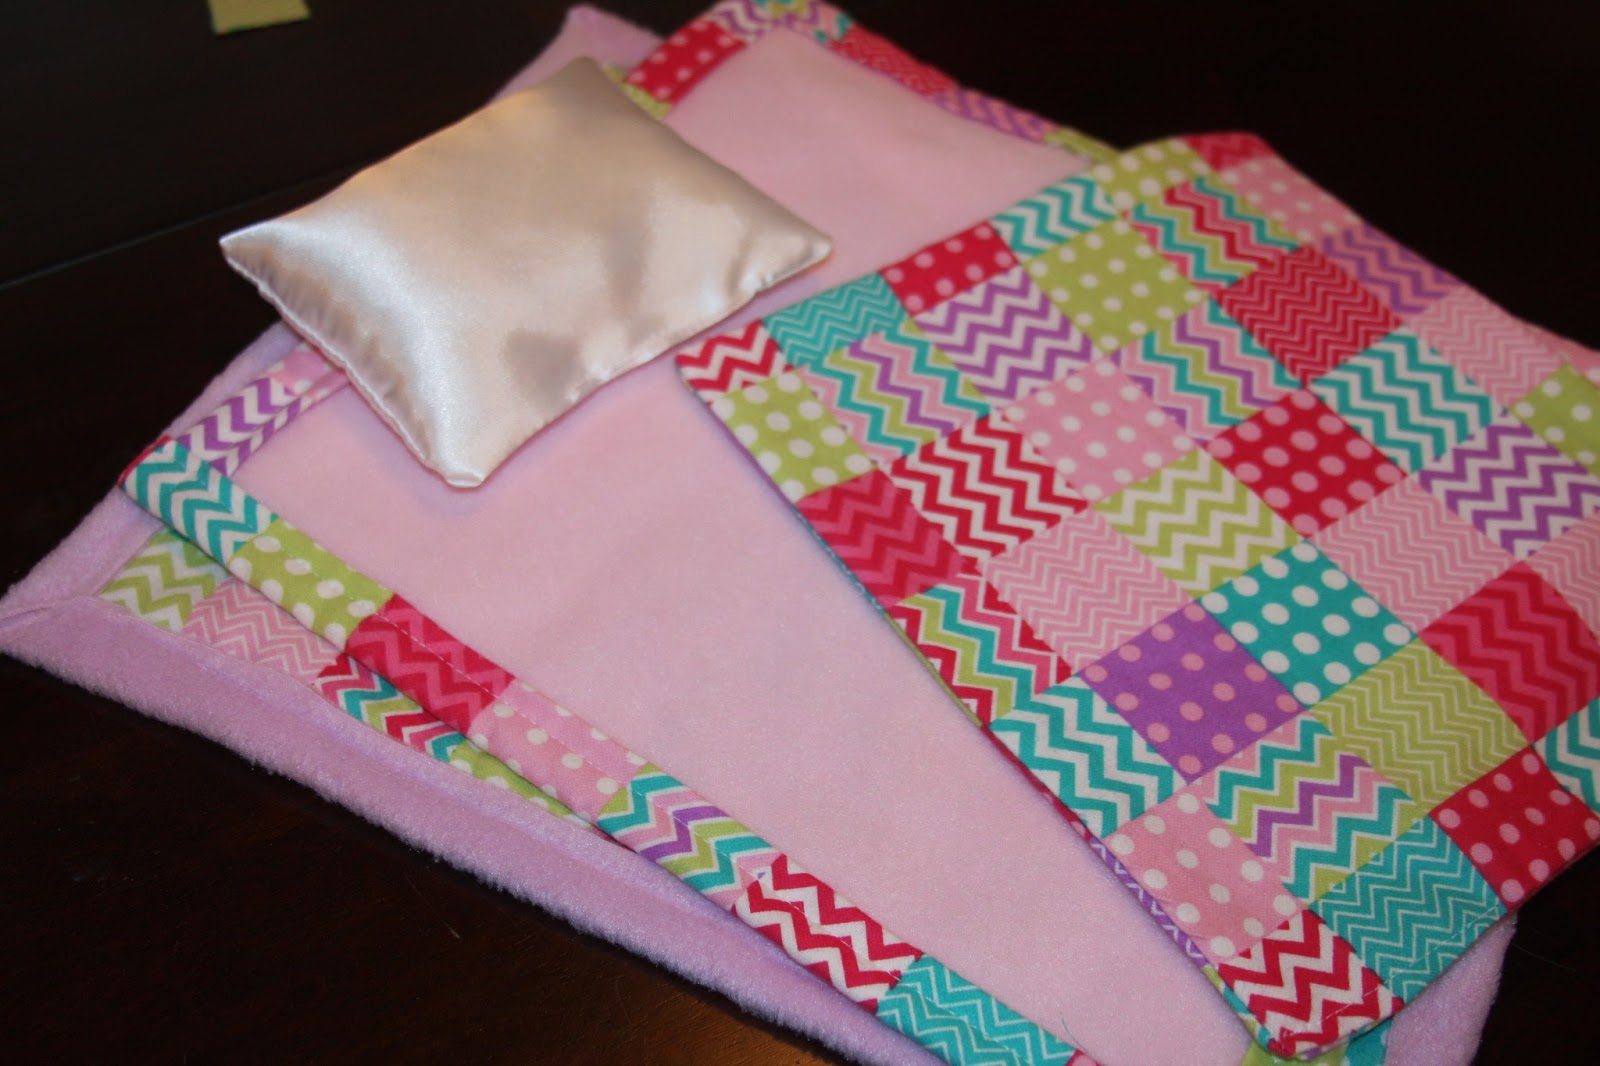 how to make a baby blanket - DriverLayer Search Engine